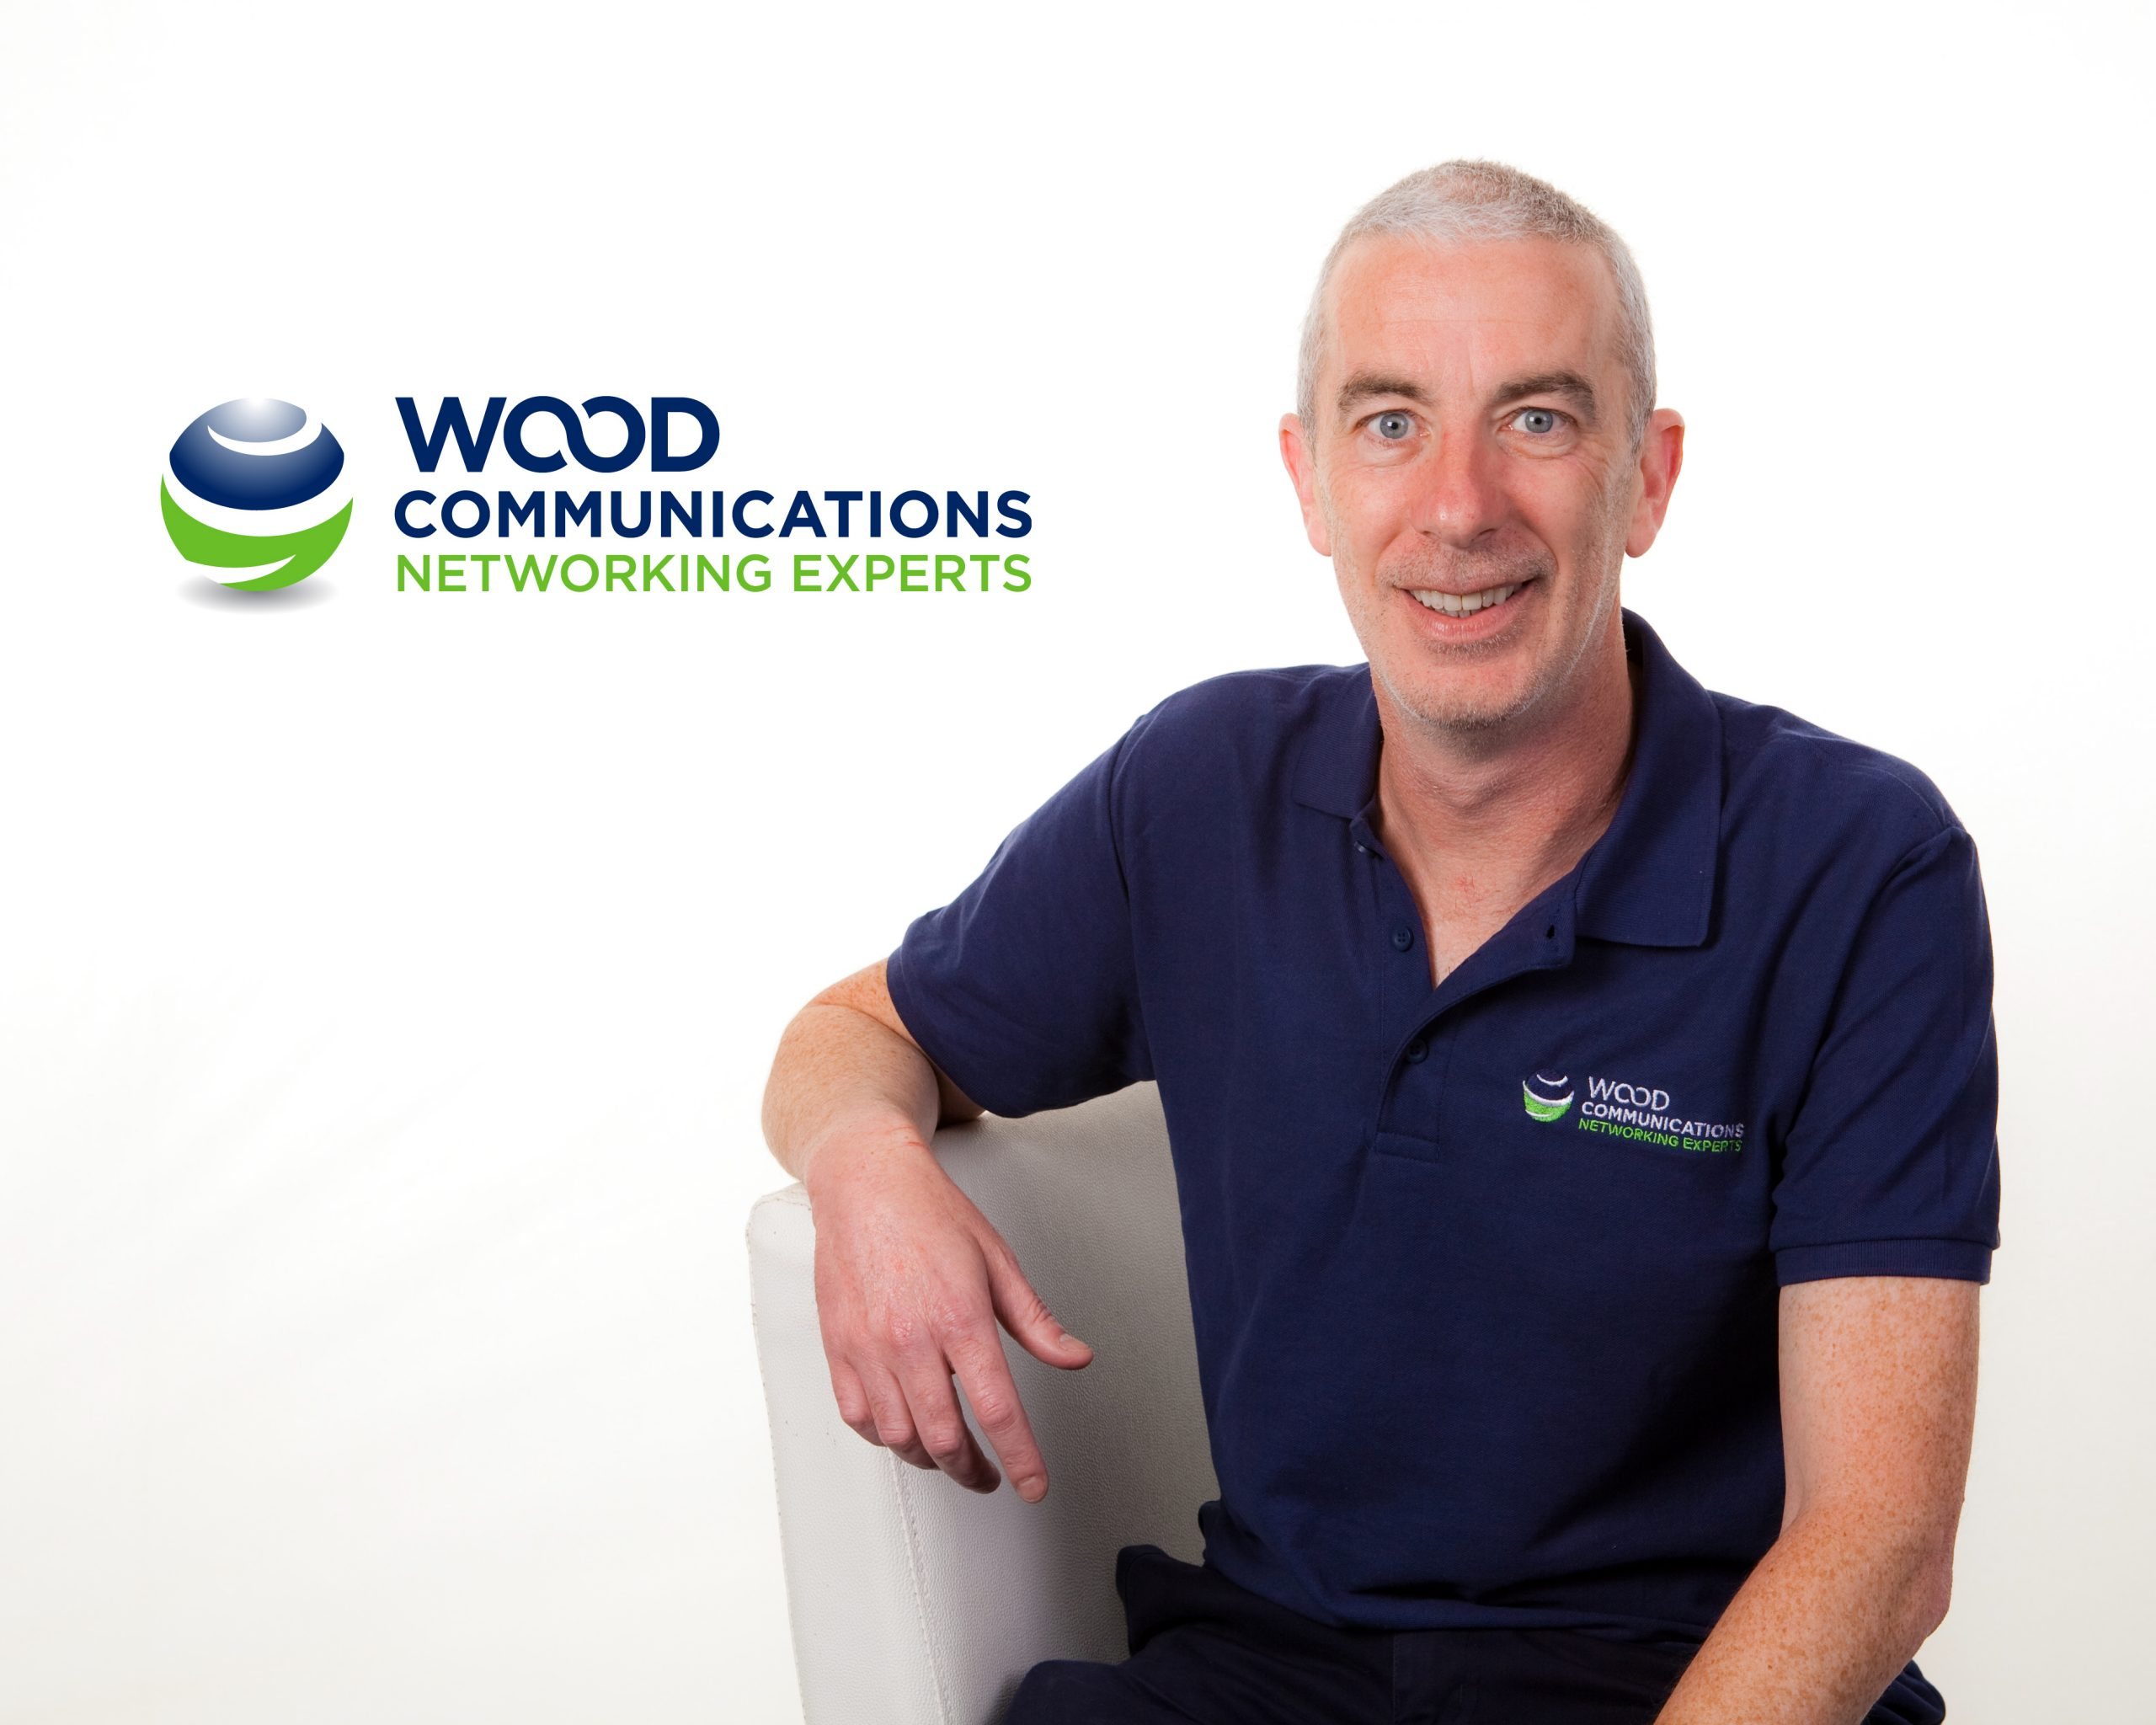 Kevin Downey - wood communications networking expert